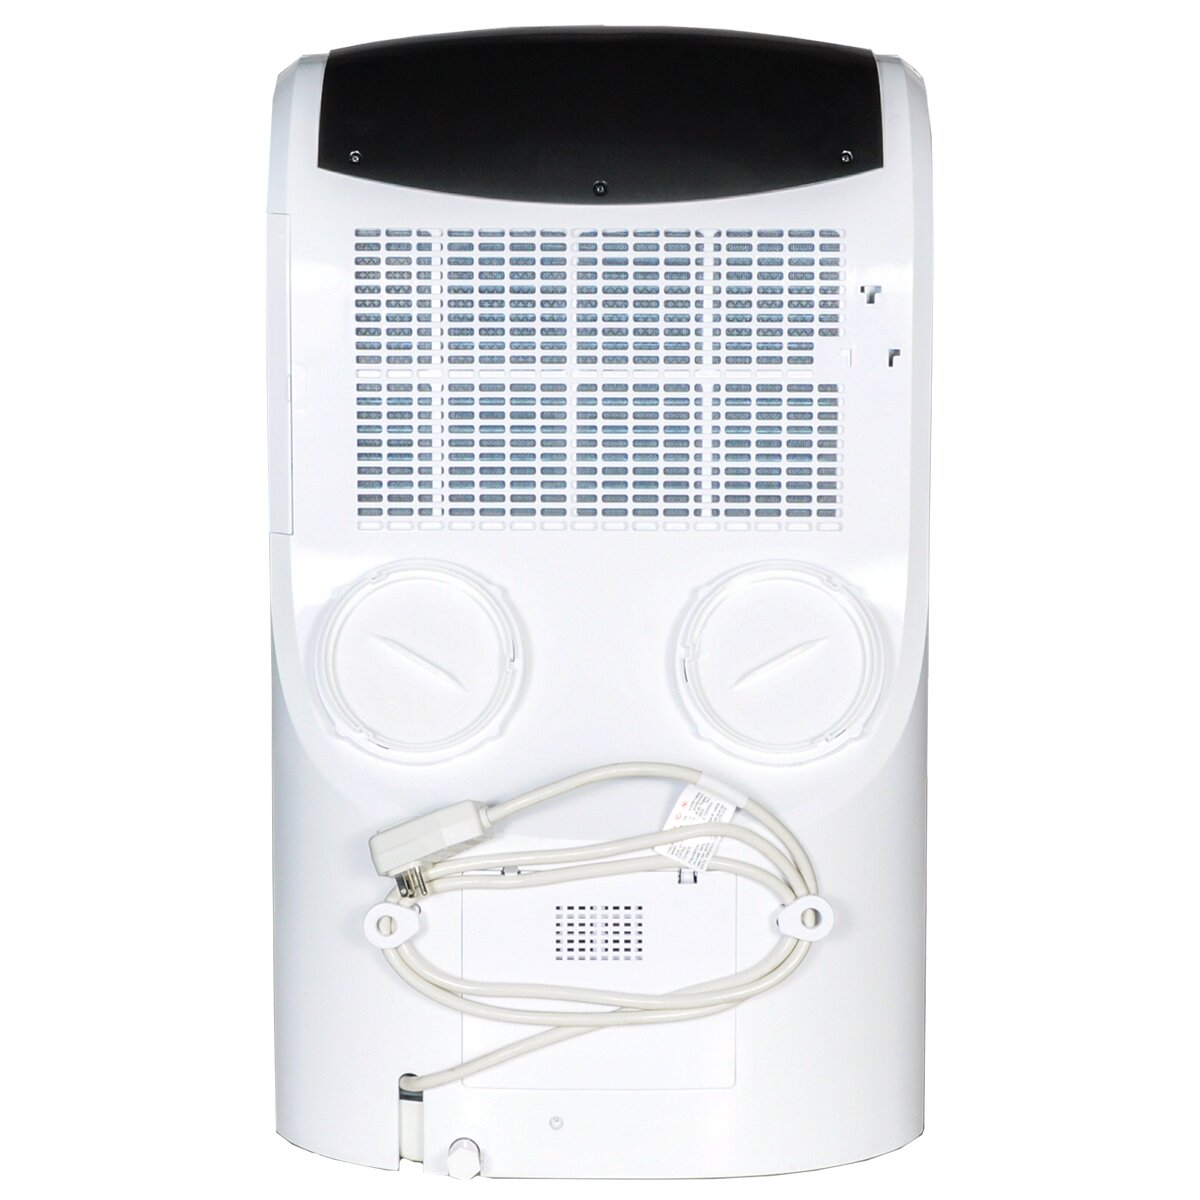 Portable Indoor Air Conditioner Heater and Dehumidifier & Reviews #536478